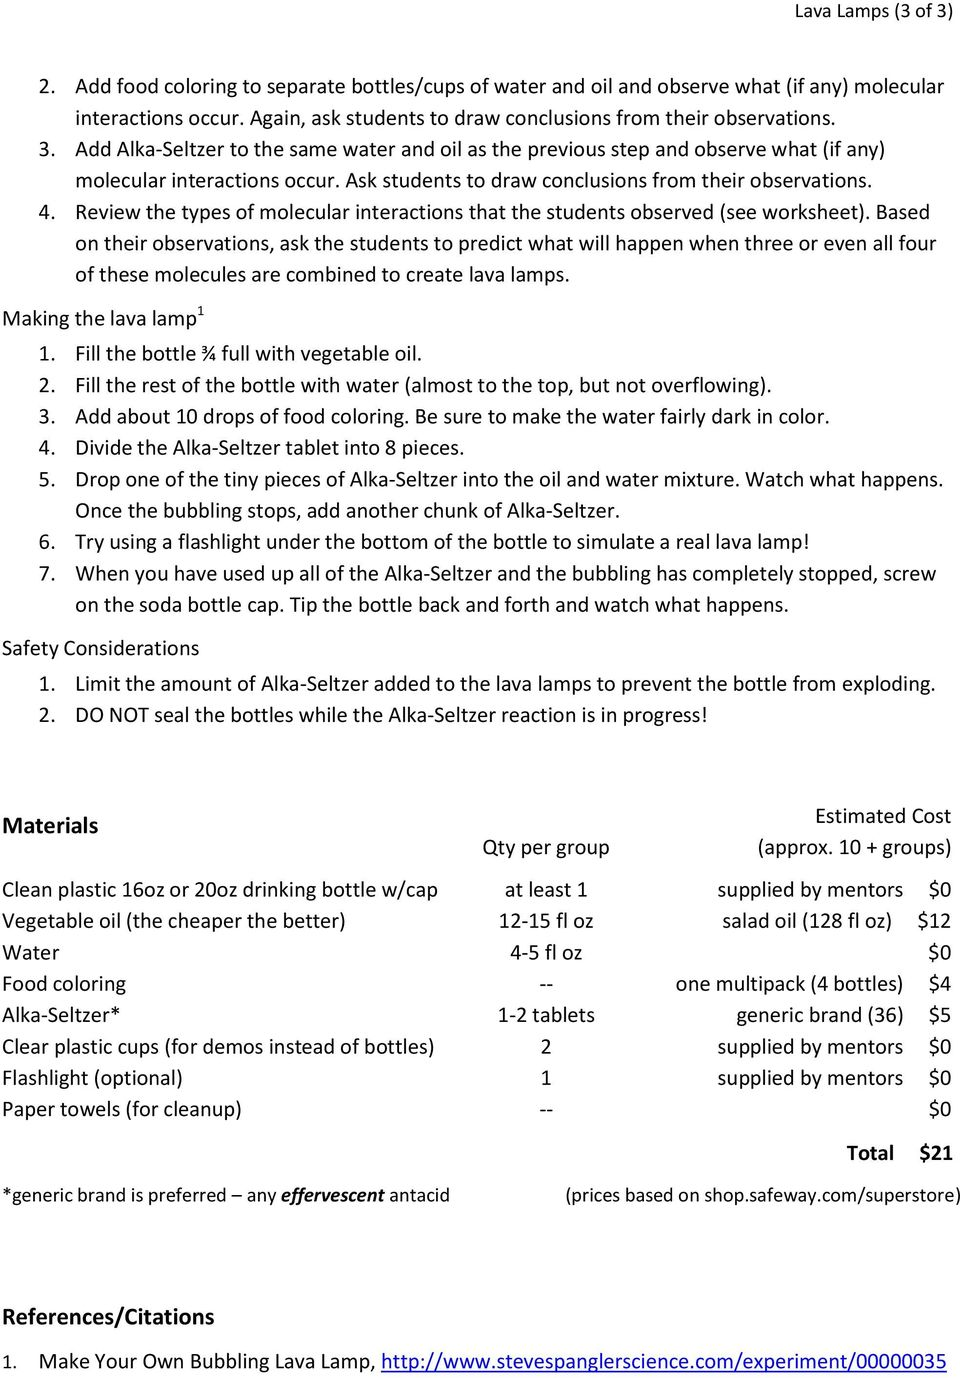 Lesson Plan for Lava Lamps - PDF